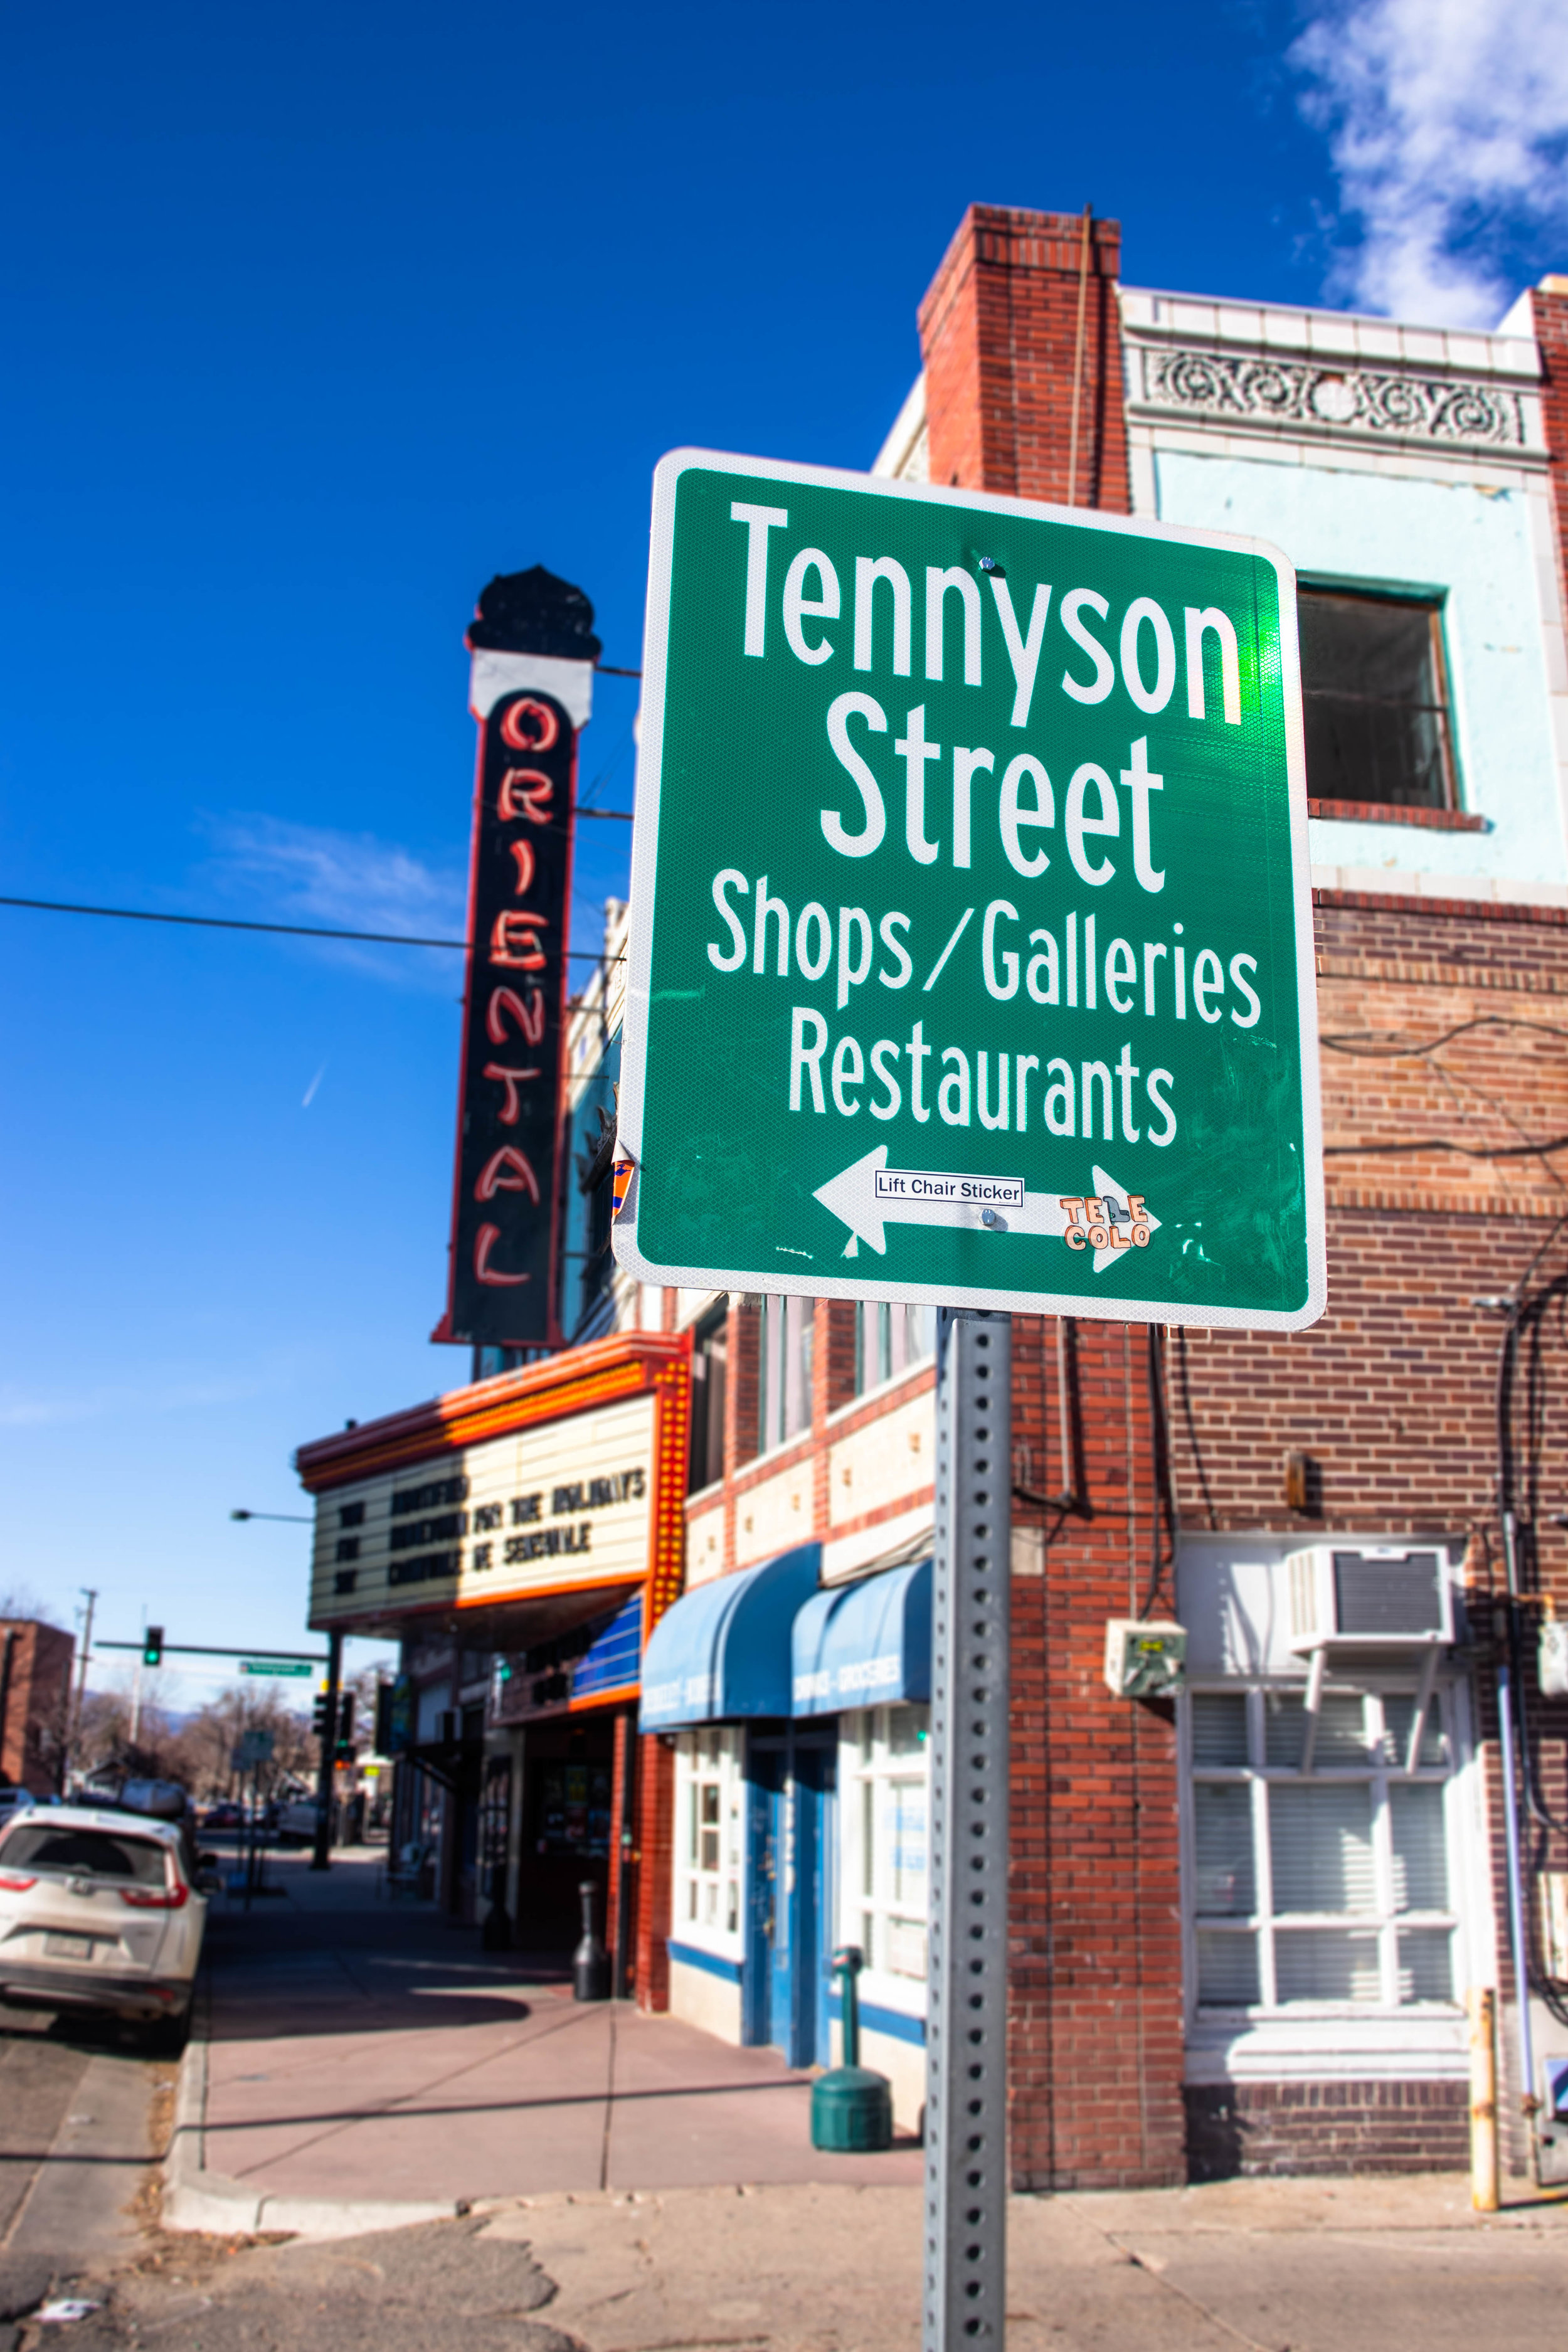 Tennyson Street Shops